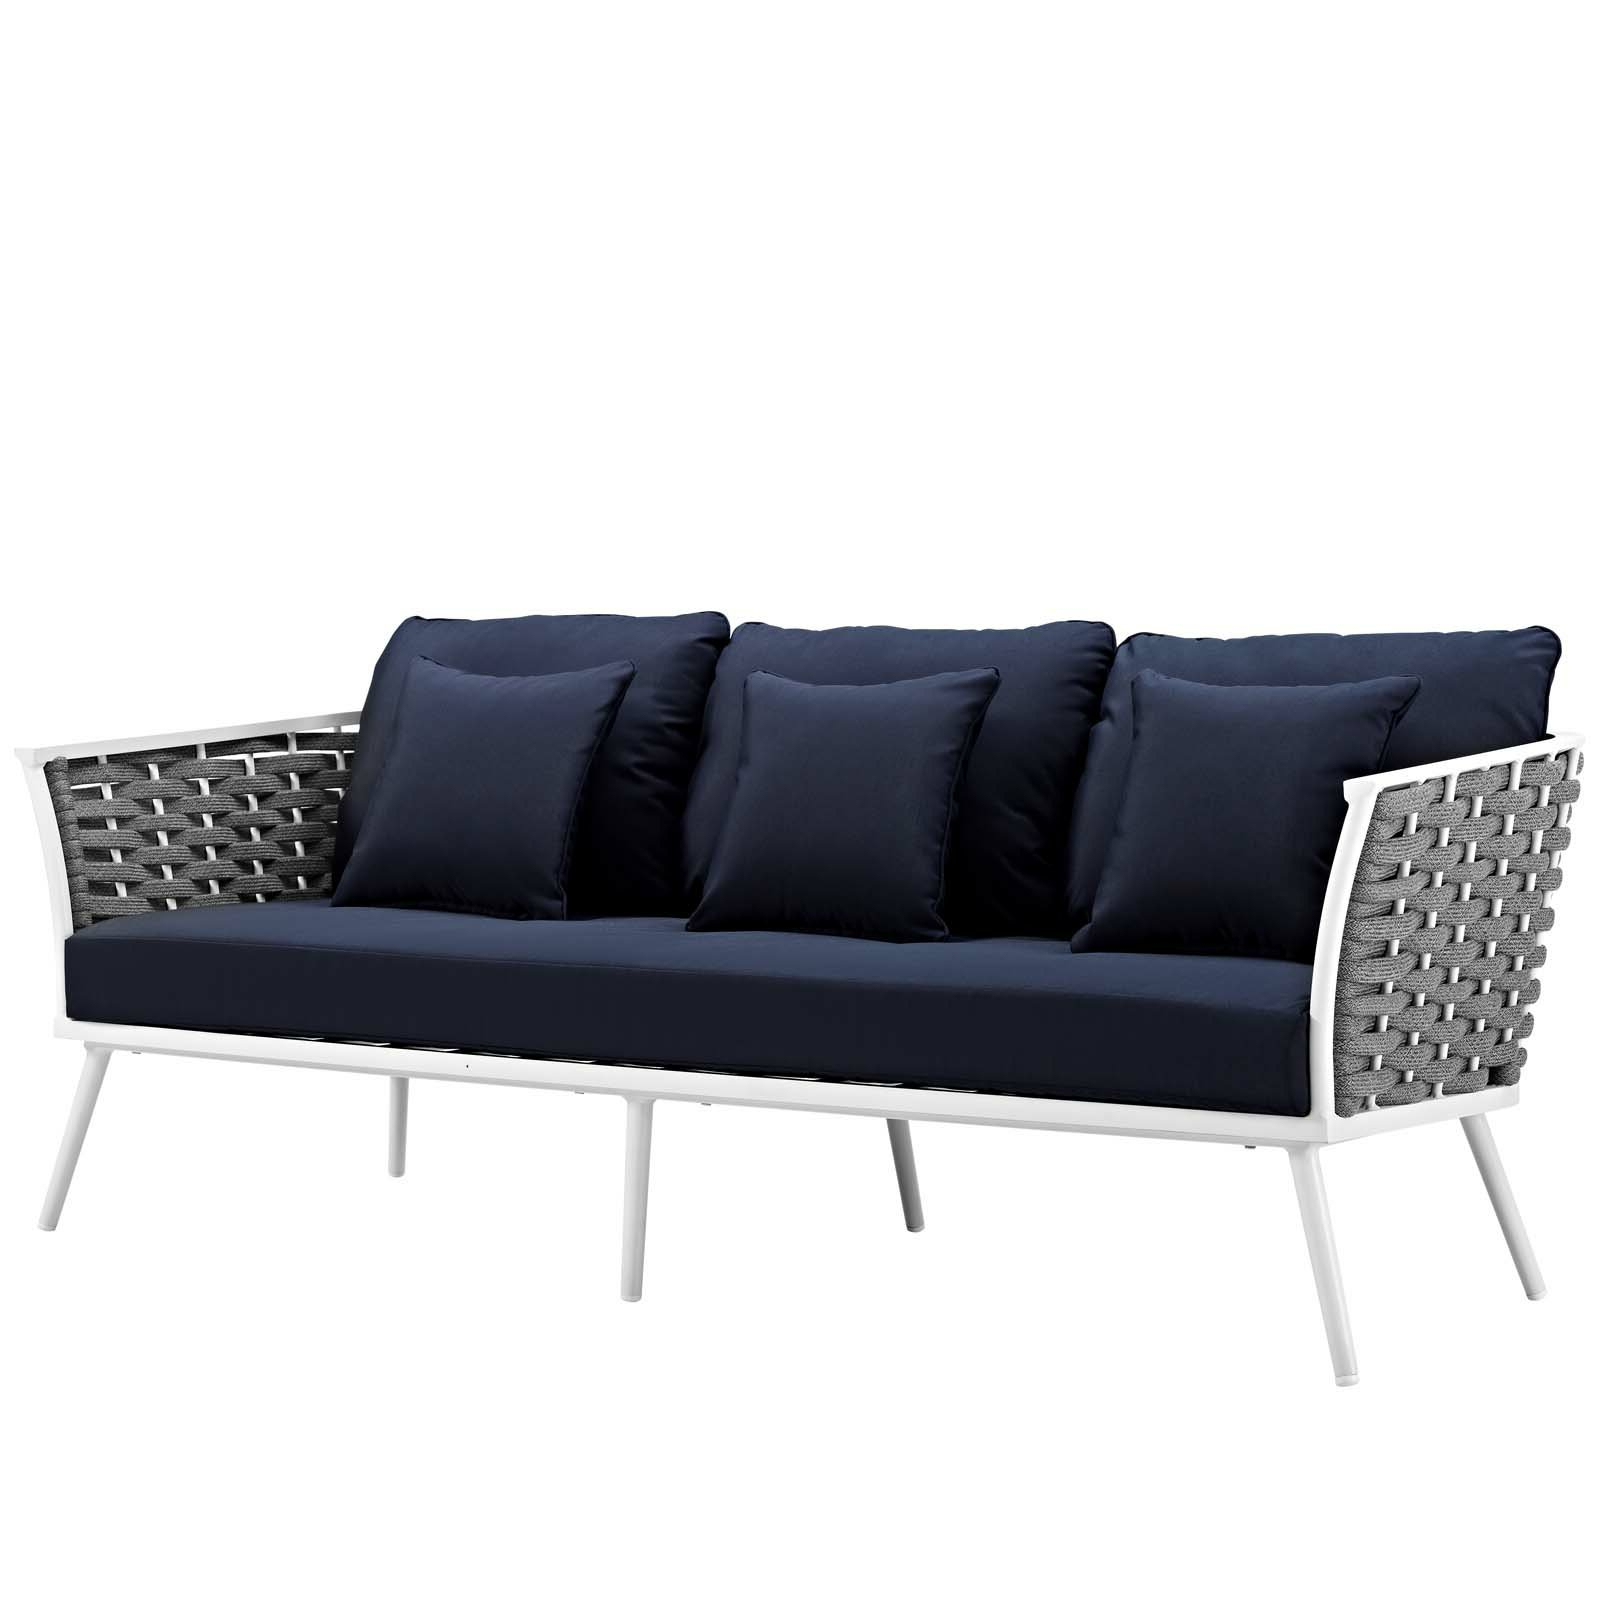 Best And Newest O'kean Teak Patio Sofas With Cushions In Rossville Outdoor Patio Sofa With Cushions (View 14 of 25)